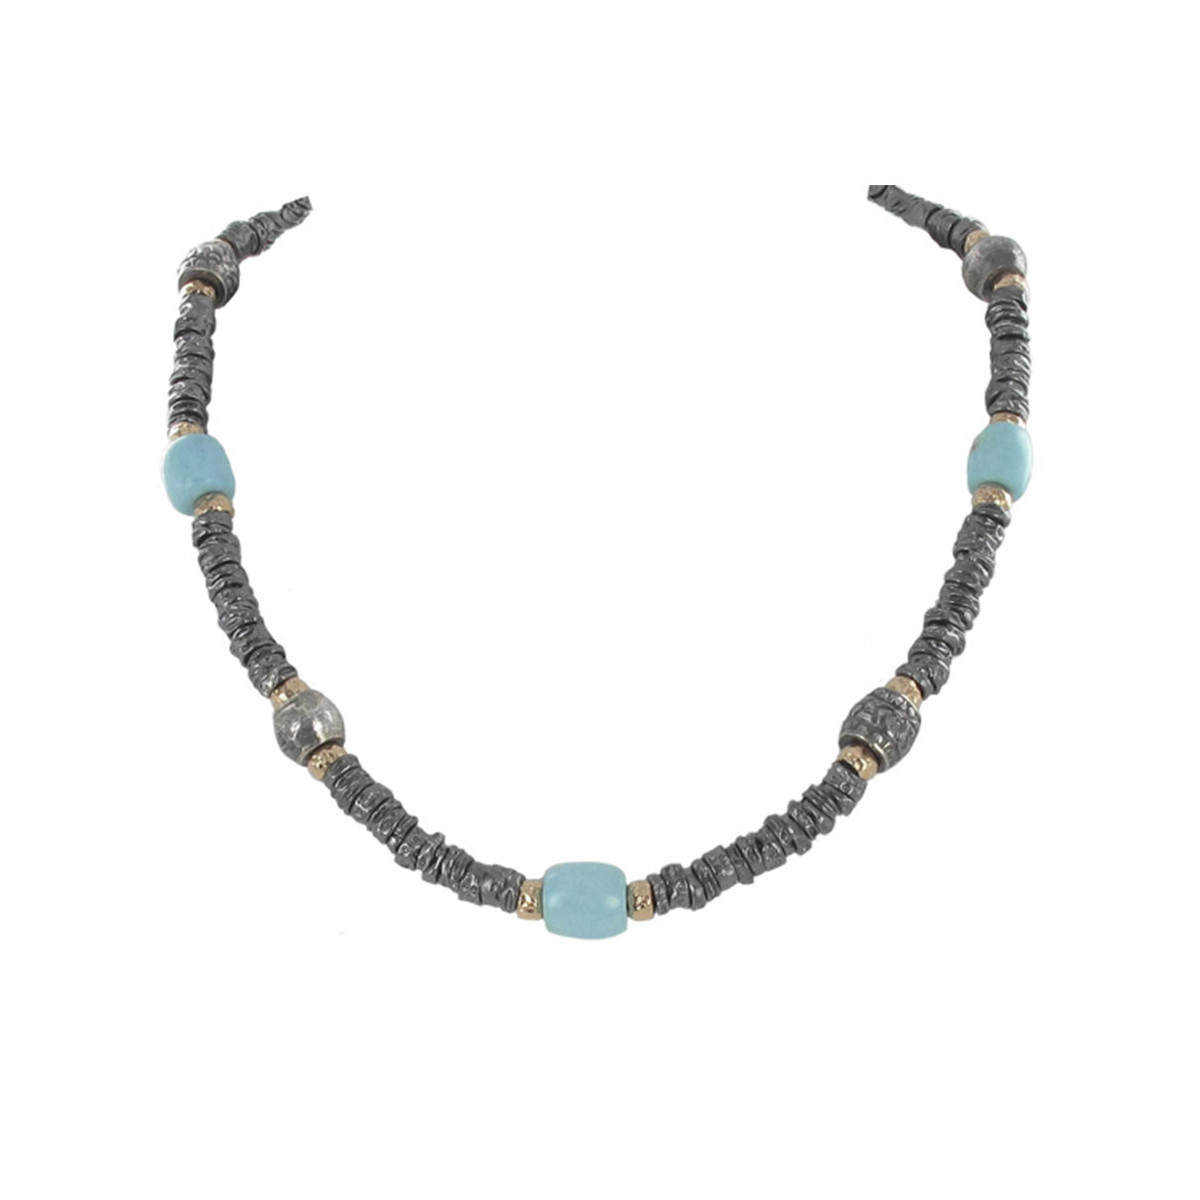 SILVER AND GOLD NECKLACE WITH TURQUOISE